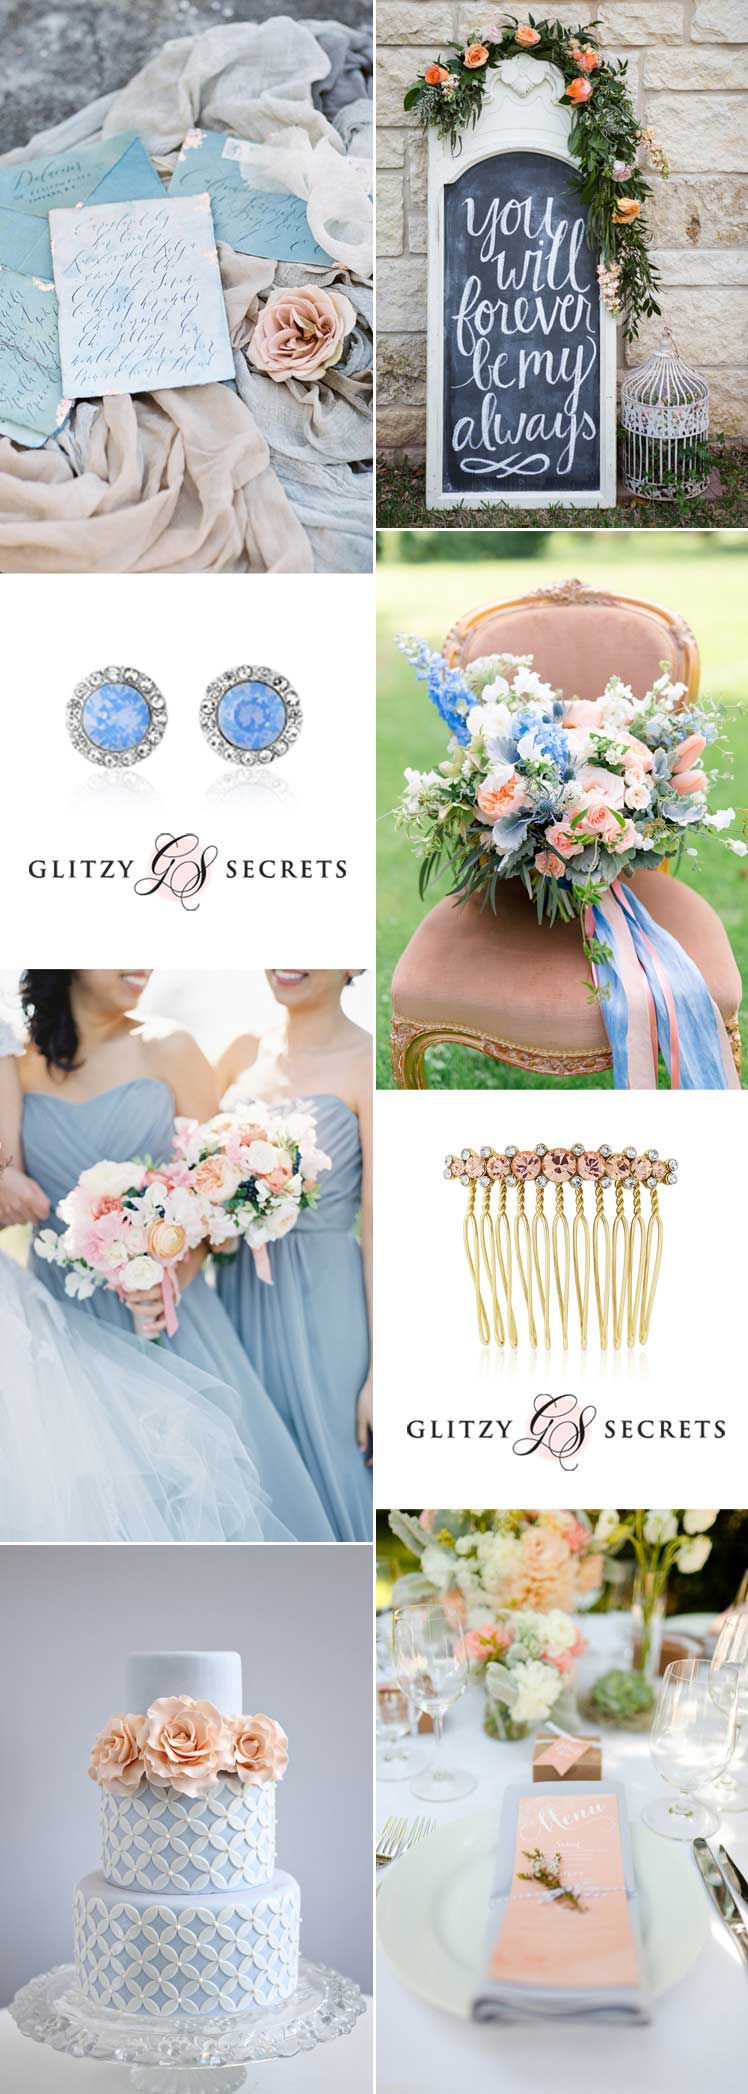 pretty peach and blue wedding inspiration